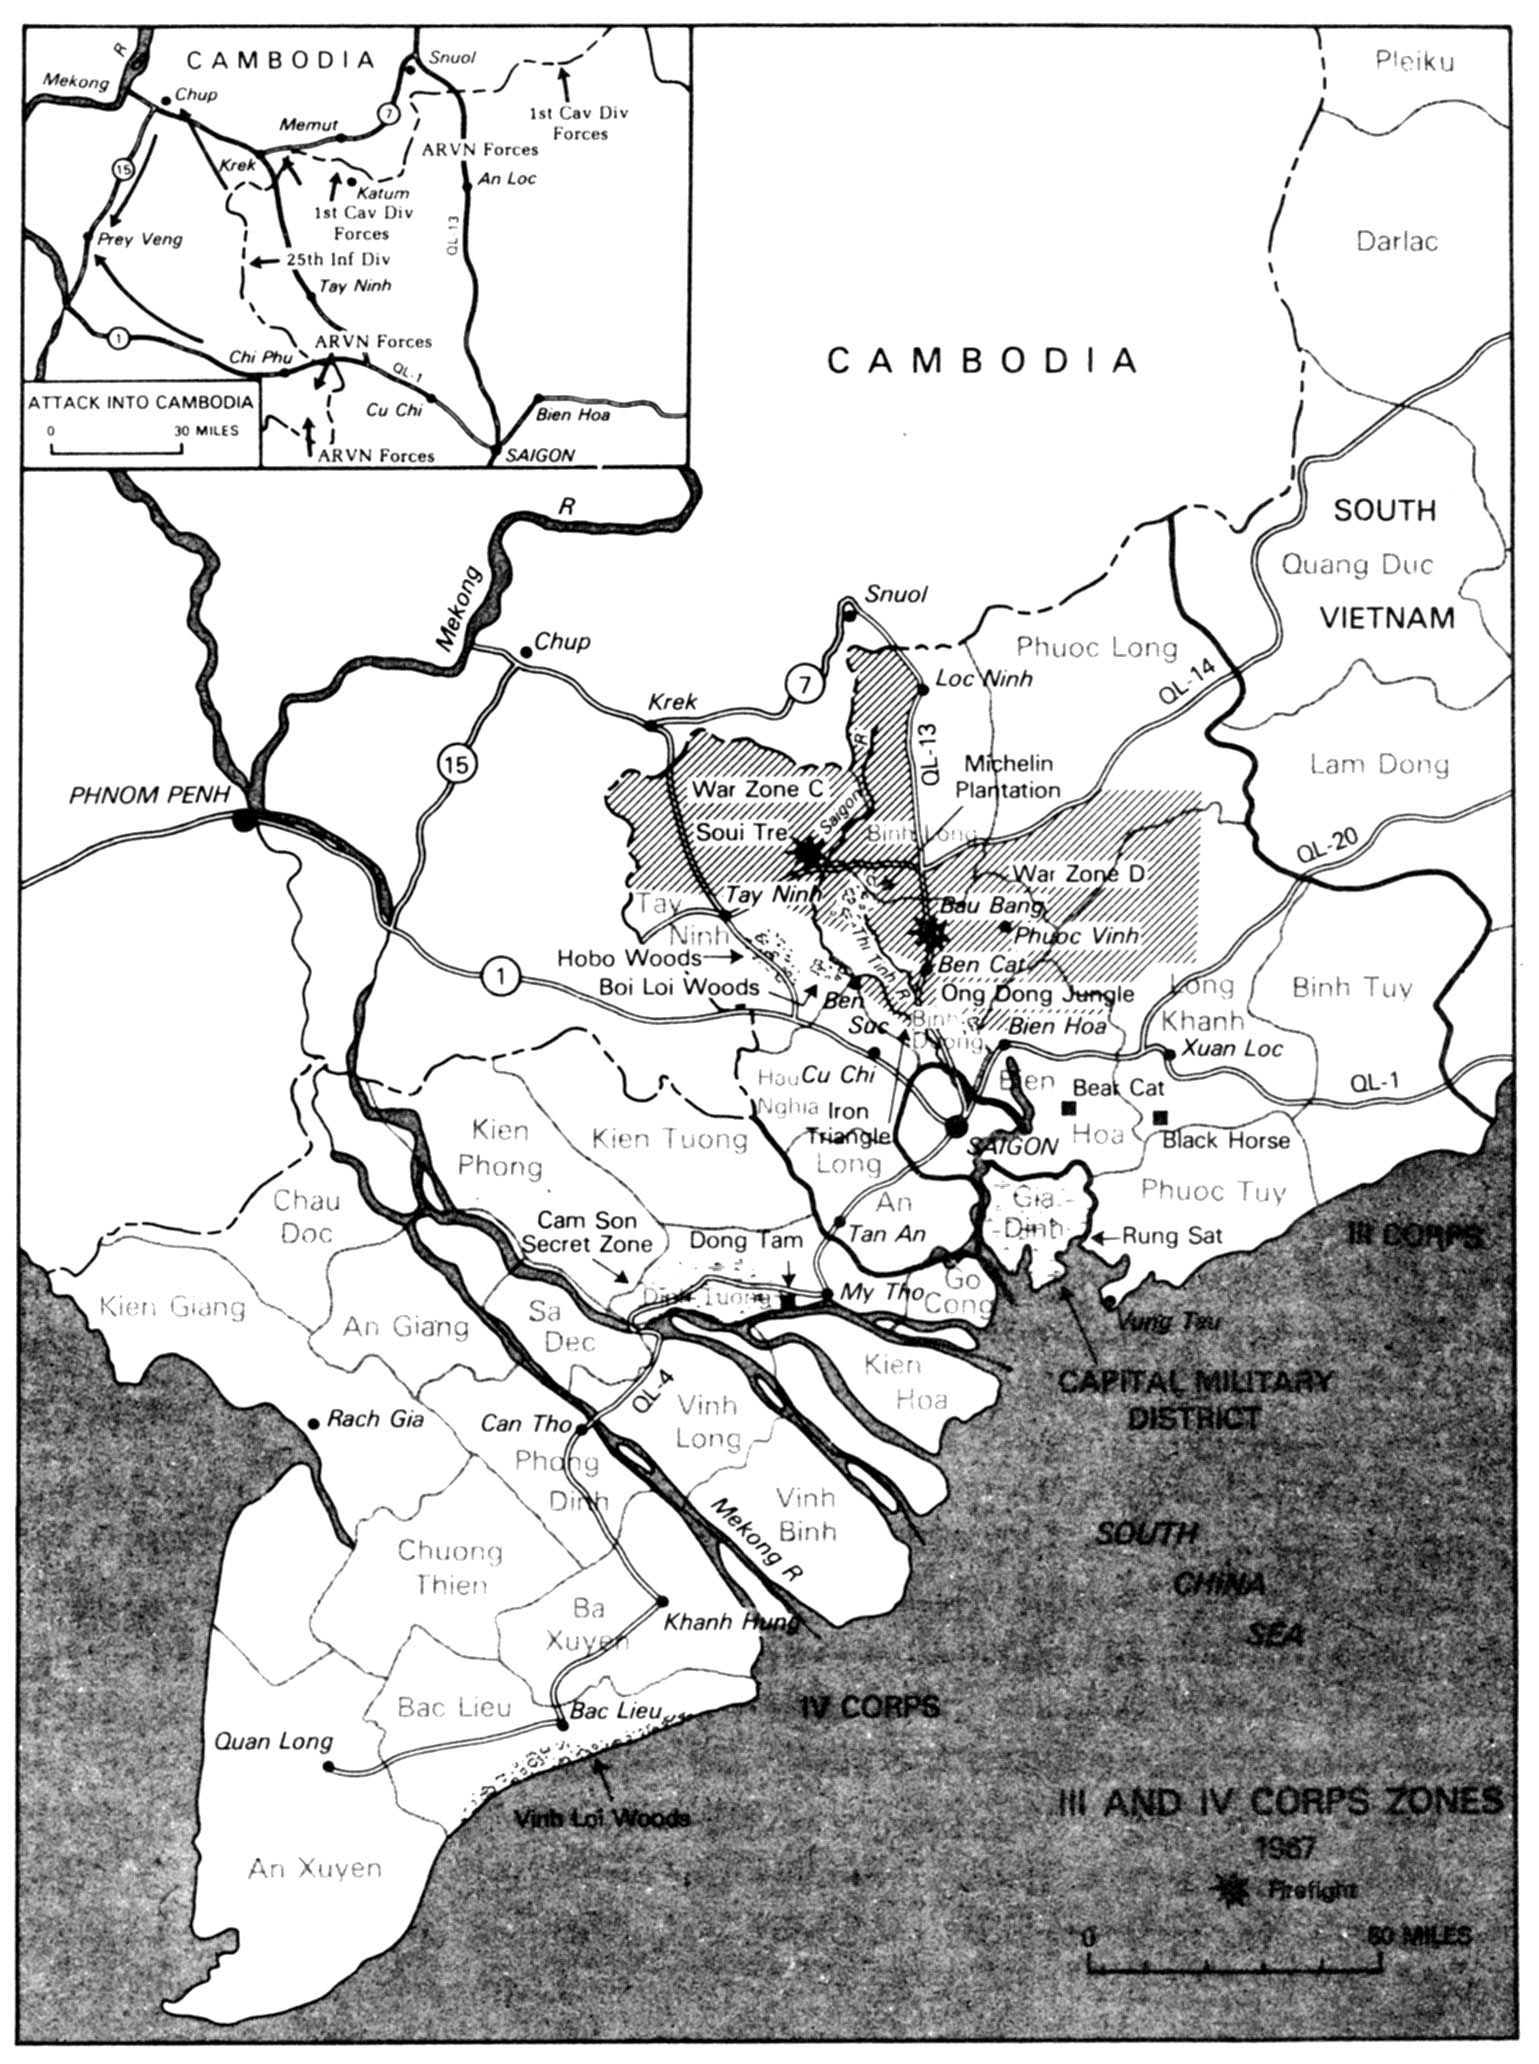 CHAPTER 28 The US Army in Vietnam